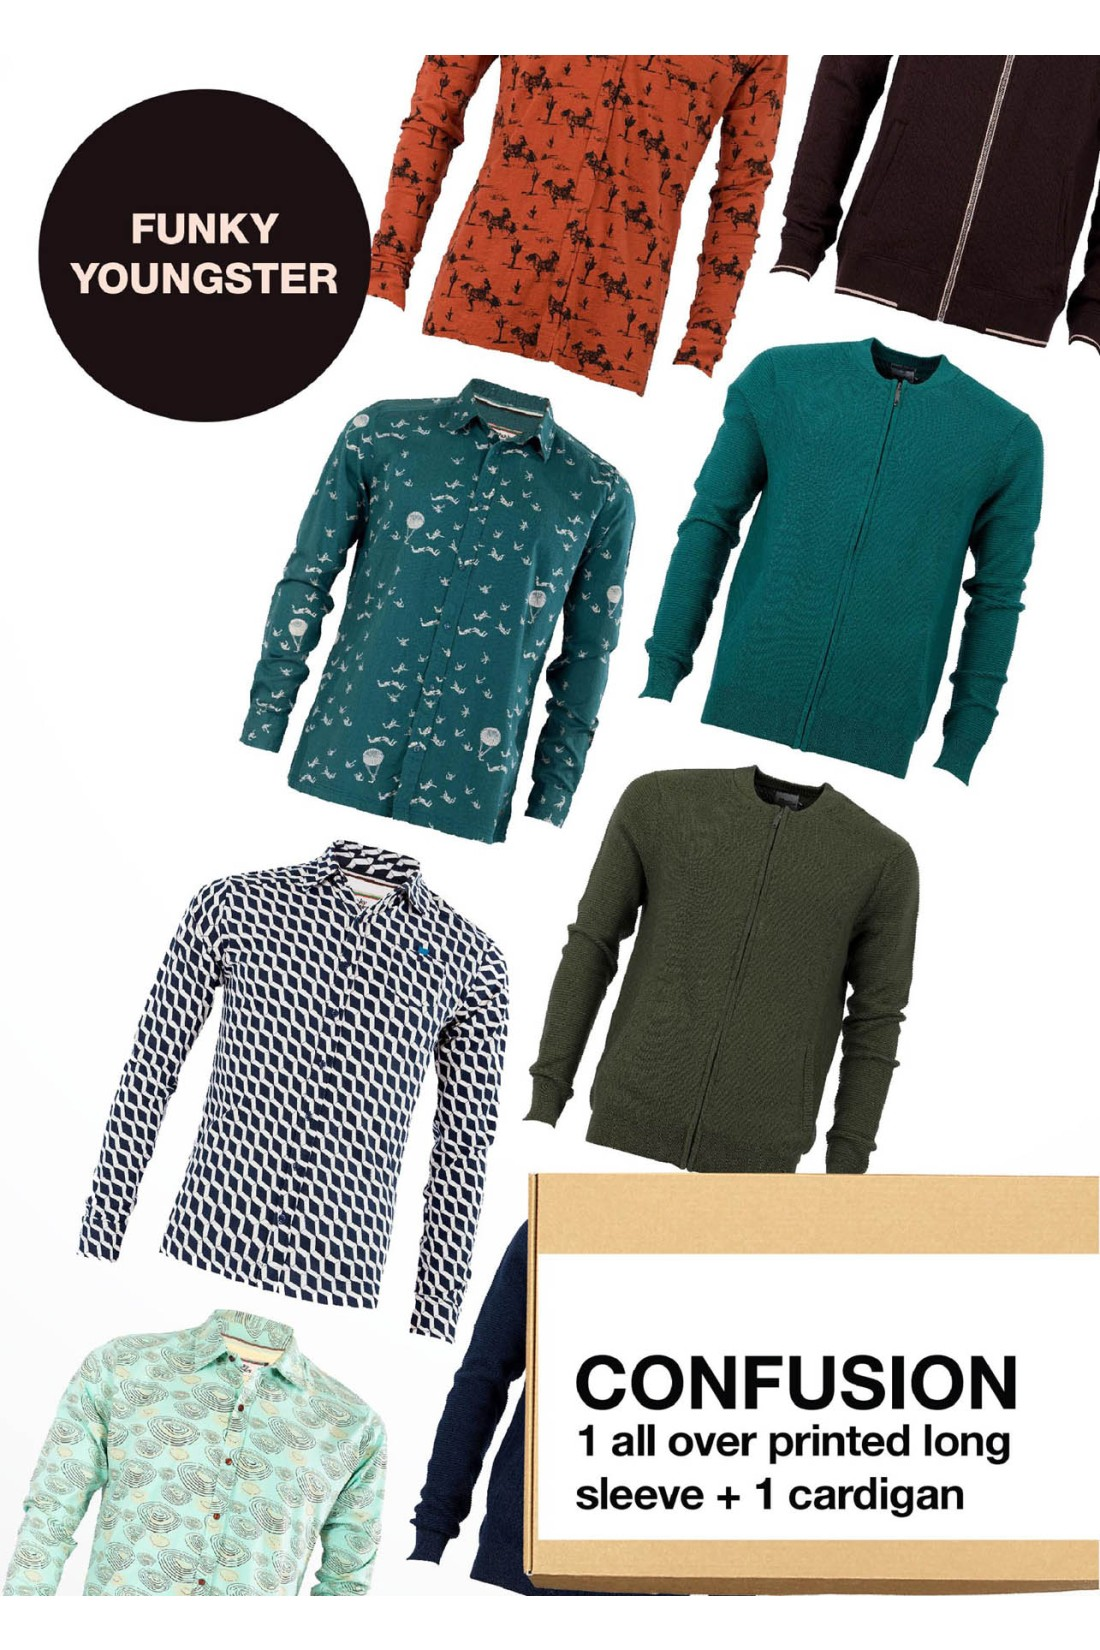 Surprise Box FUNKY YOUNGSTER - CONFUSION - 2 Styles XS-S - All Over Print Longsleeve + Cardigan